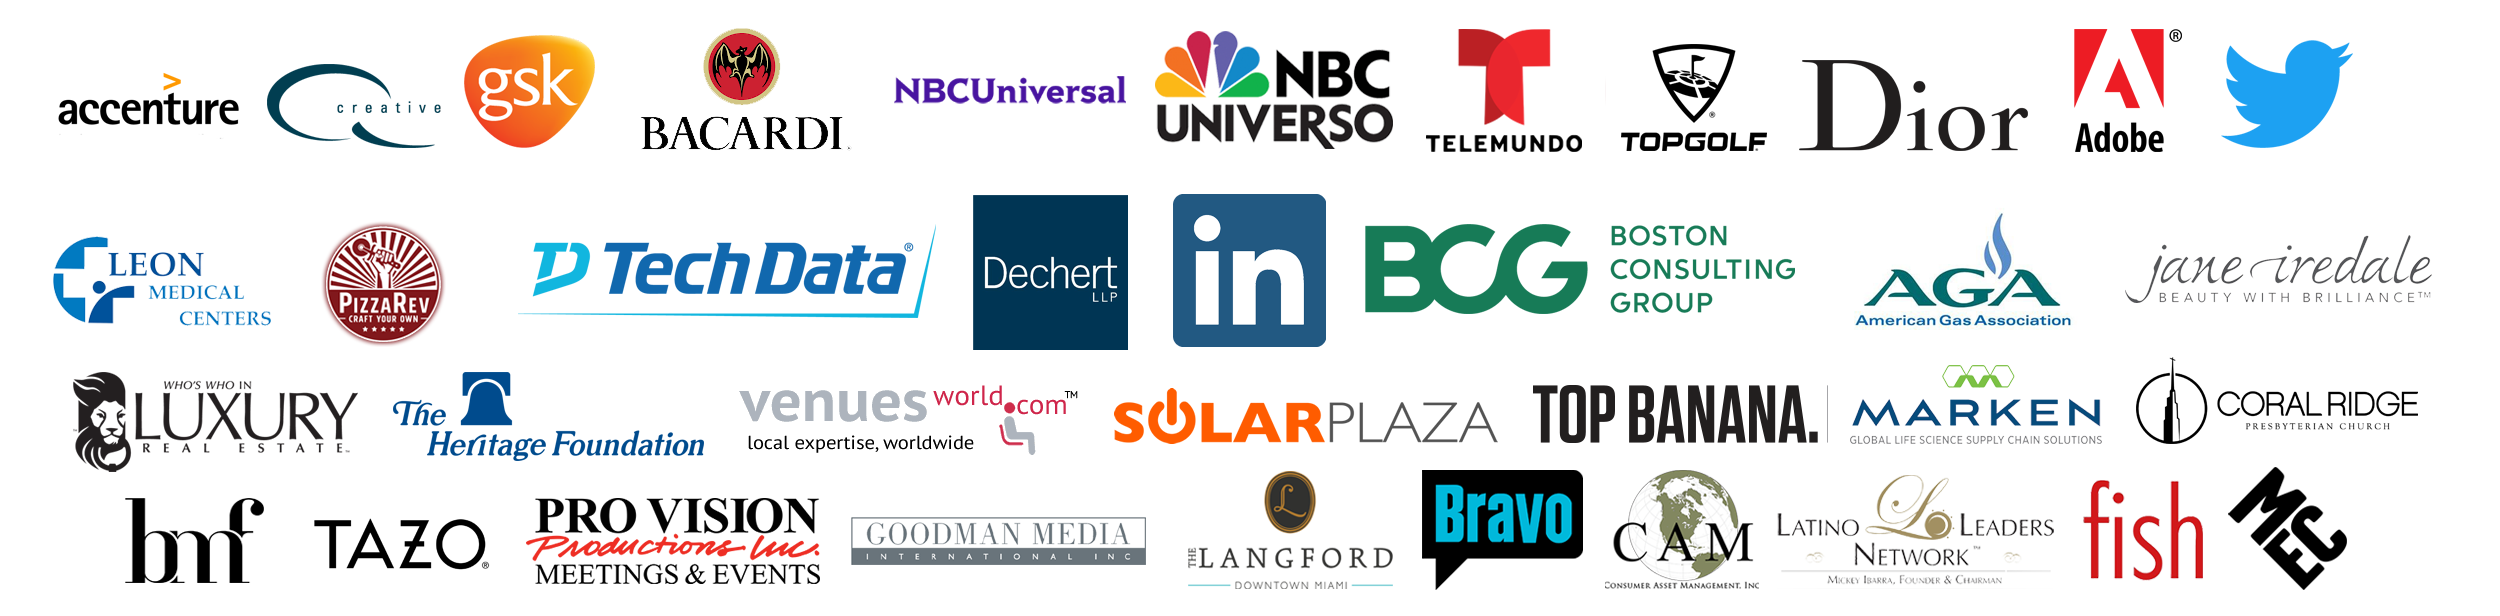 Corporate Client Logos.png